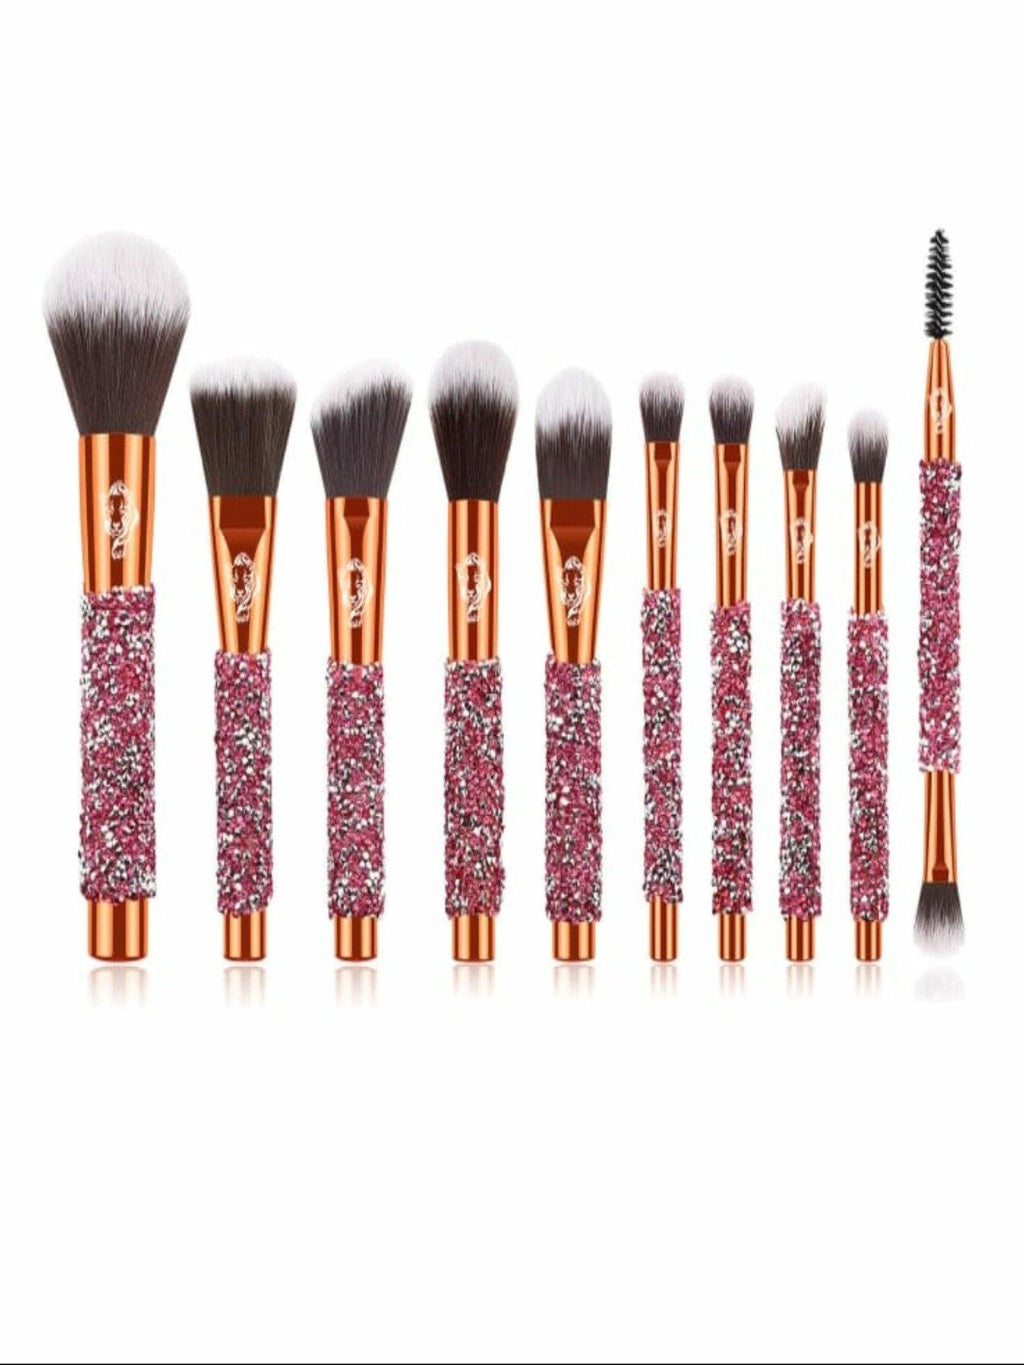 Panther Rhinestone  10 Pcs Makeup Brush Set freeshipping - Panther